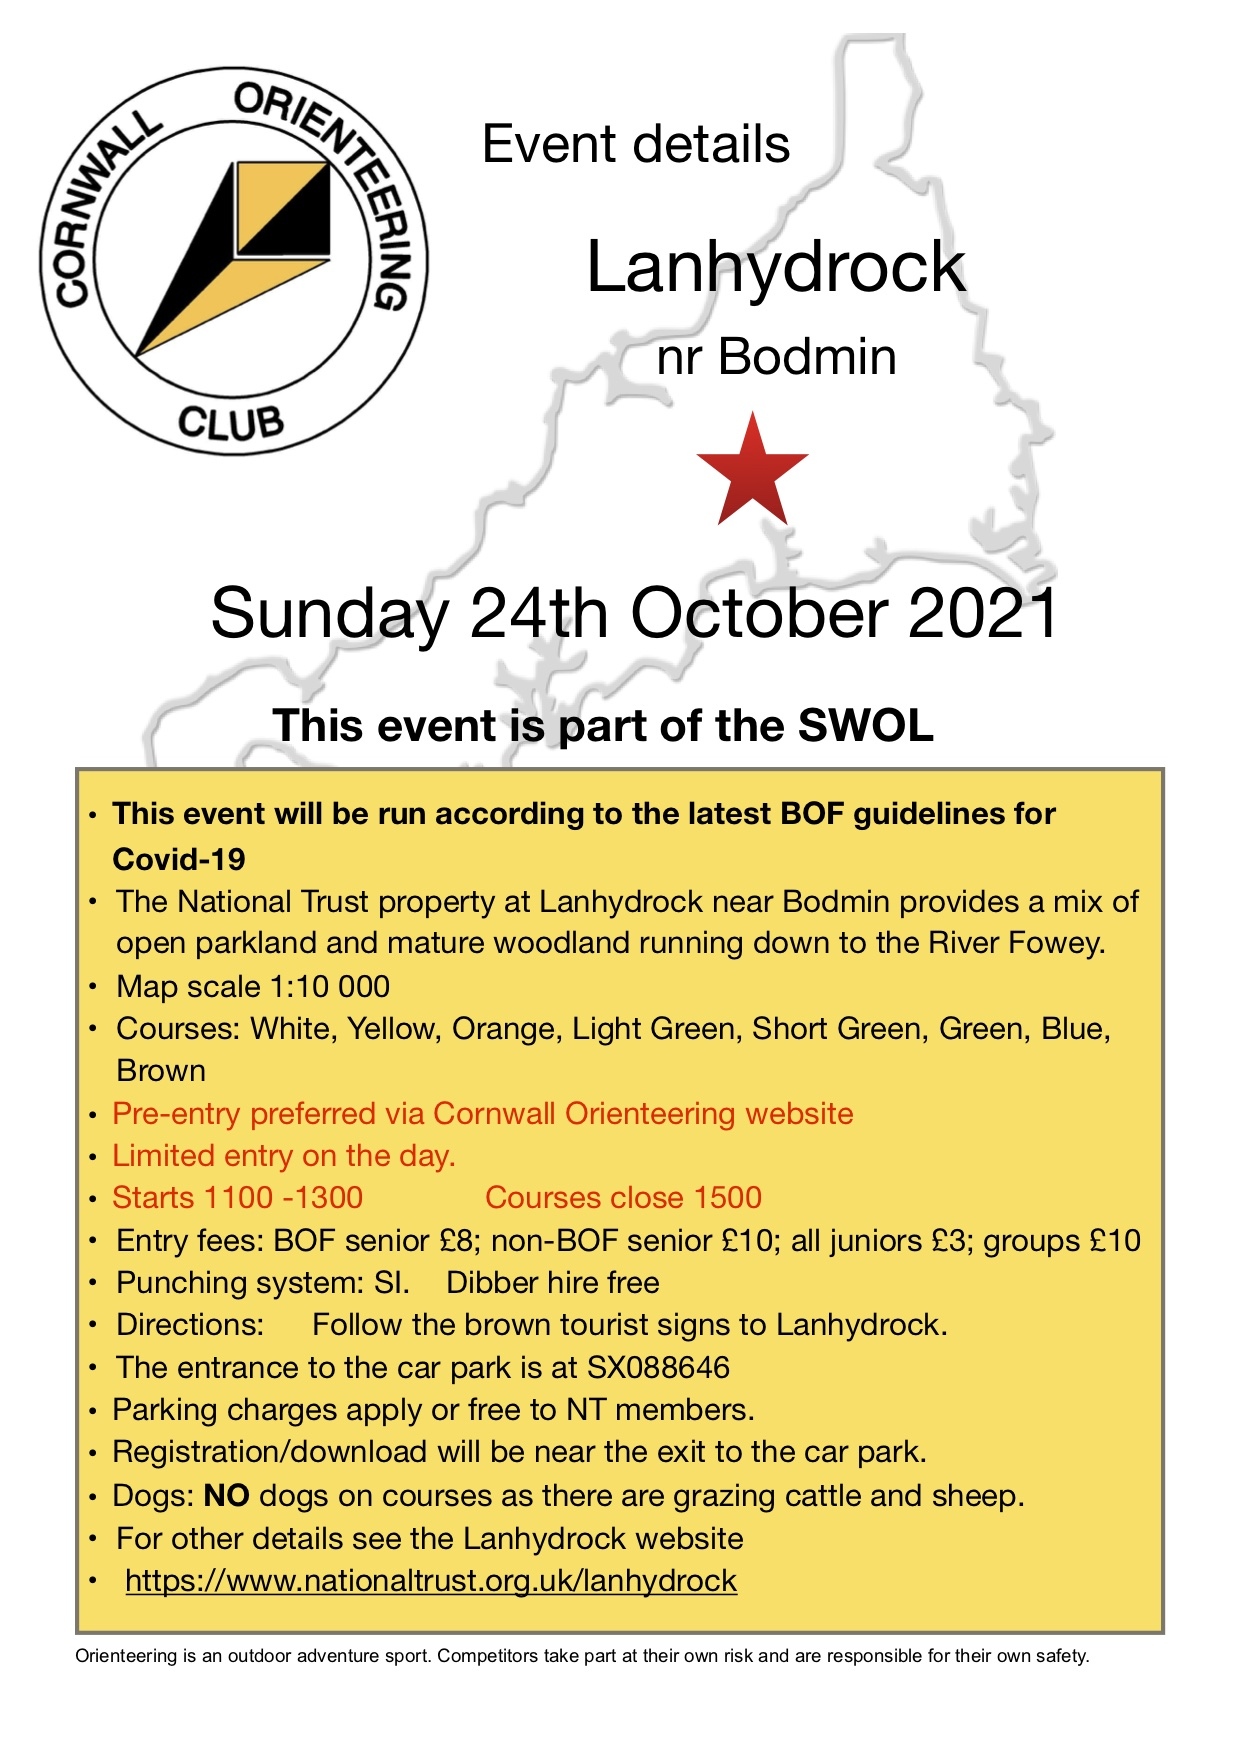 flyer for lanhydrock event